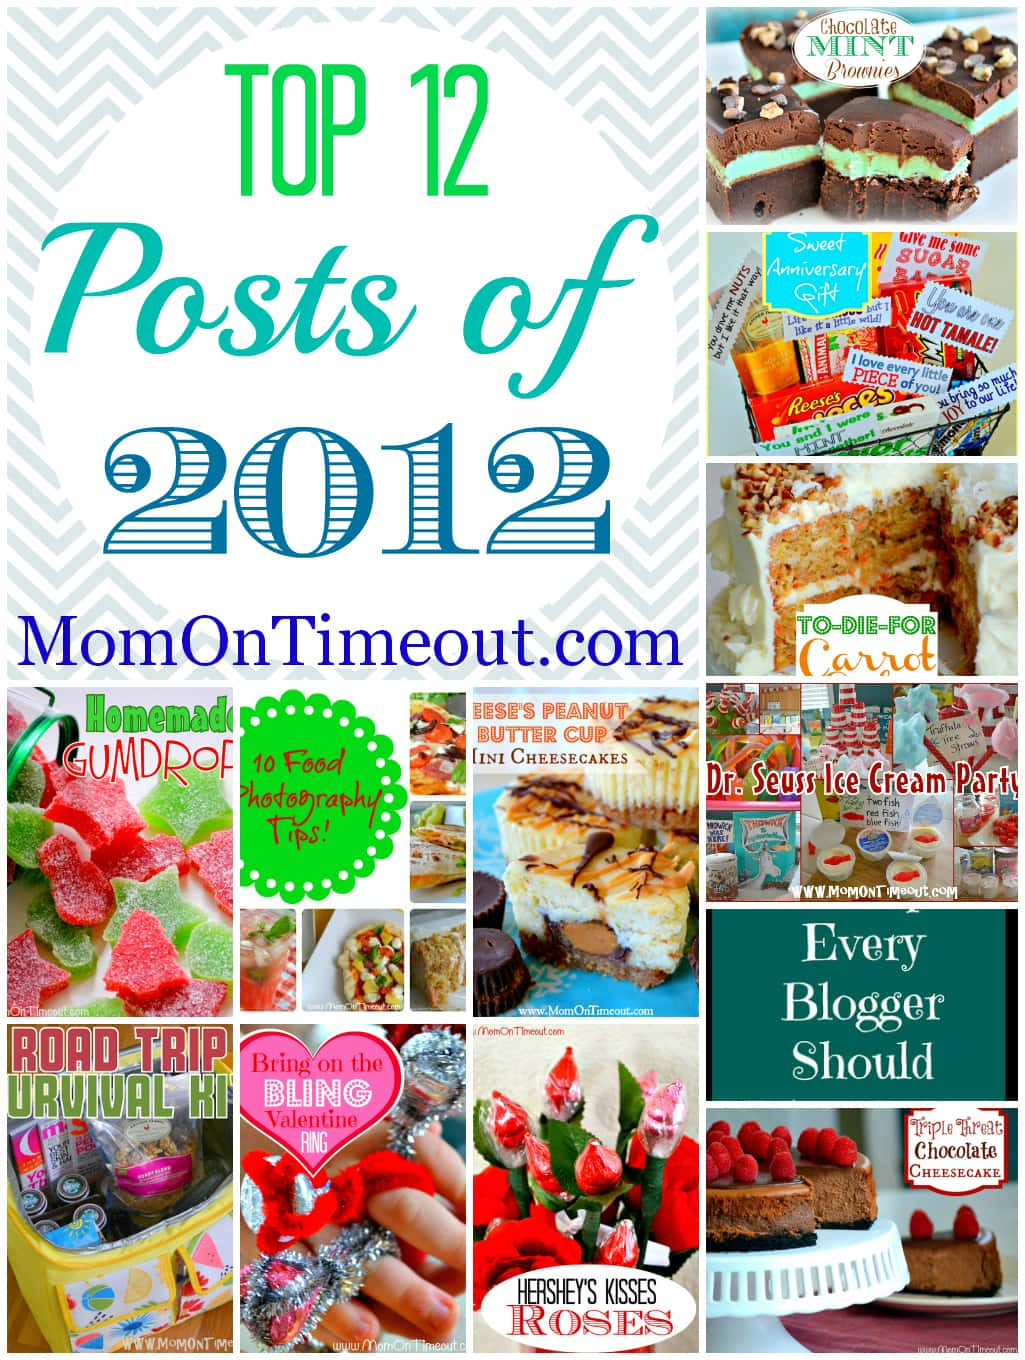 Top 12 Posts from 2012 MomOnTimeout.com | The top recipes and crafts from 2012! #recipes #crafts